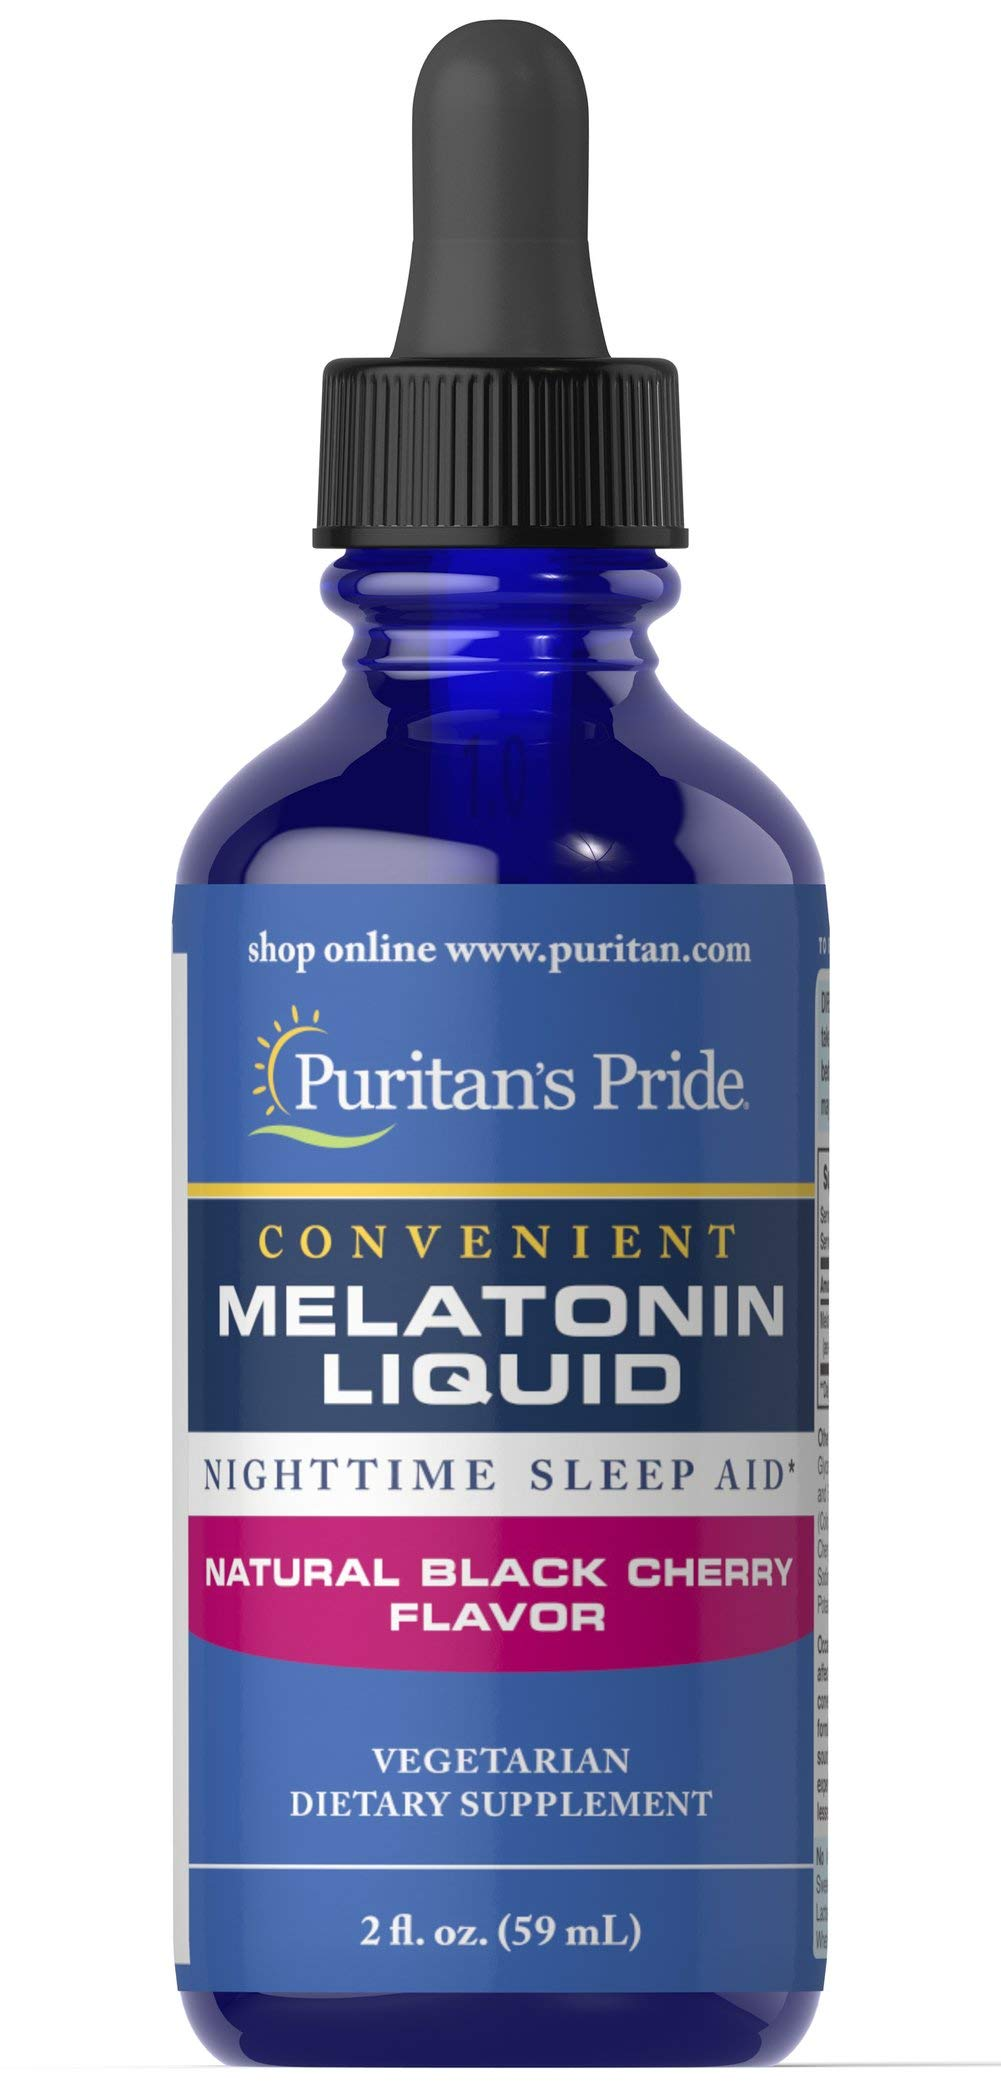 Puritans Pride Sublingual Melatonin Natural Black Cherry Flavor 1 mg-2 oz Liquid